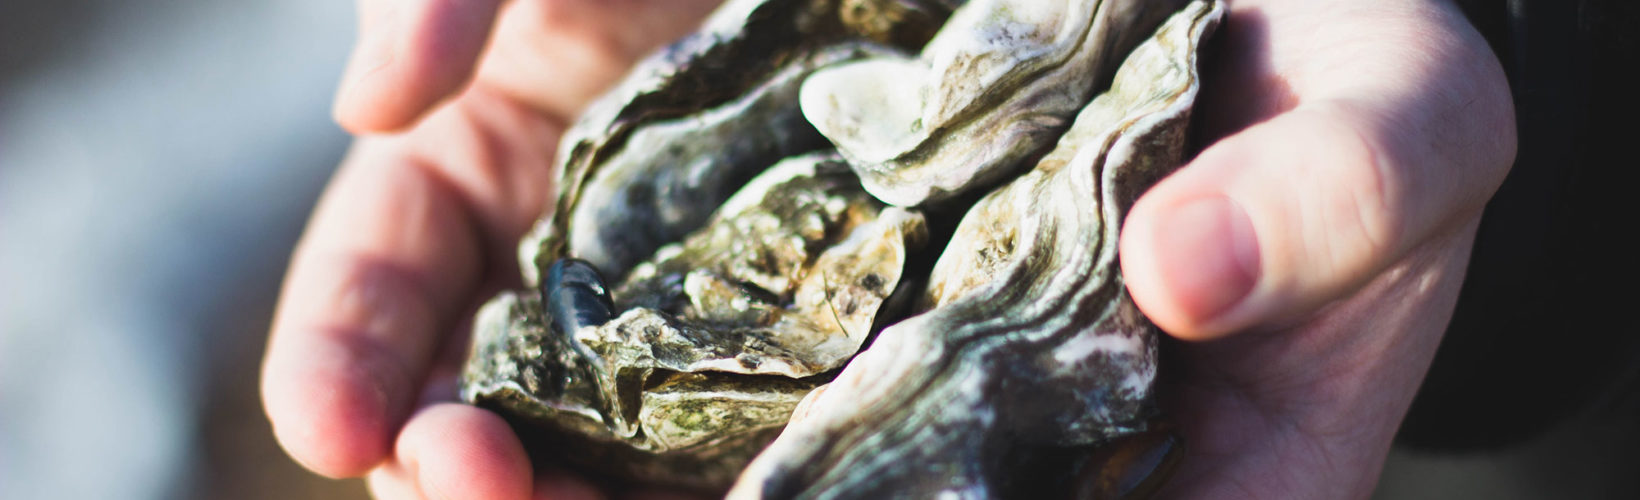 Oyster safari at the Wadden Sea National Park